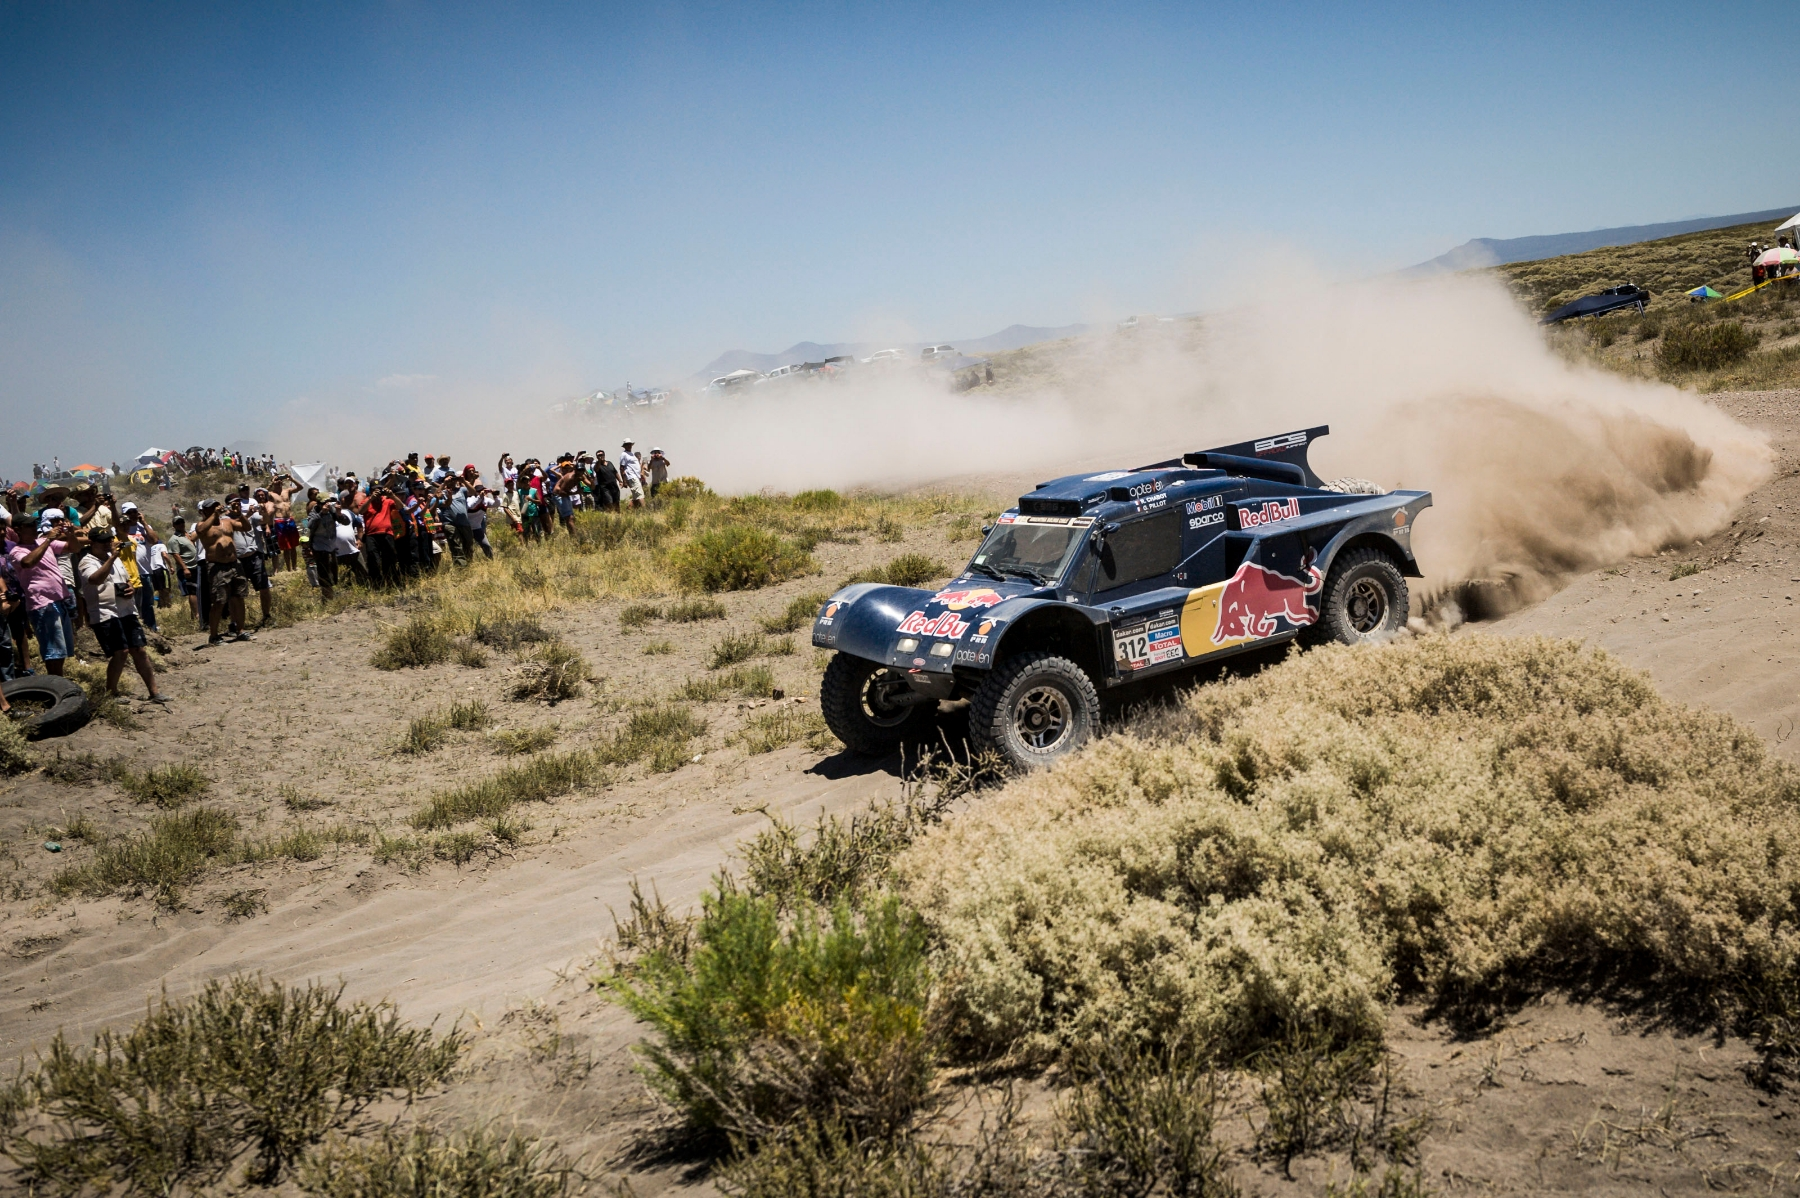 Ronan Chabot (driver) and Gilles Pillot (co-driver) races during the 2nd stage of Dakar Rally from San Luis to San Rafael, Argentina on January 6th, 2014